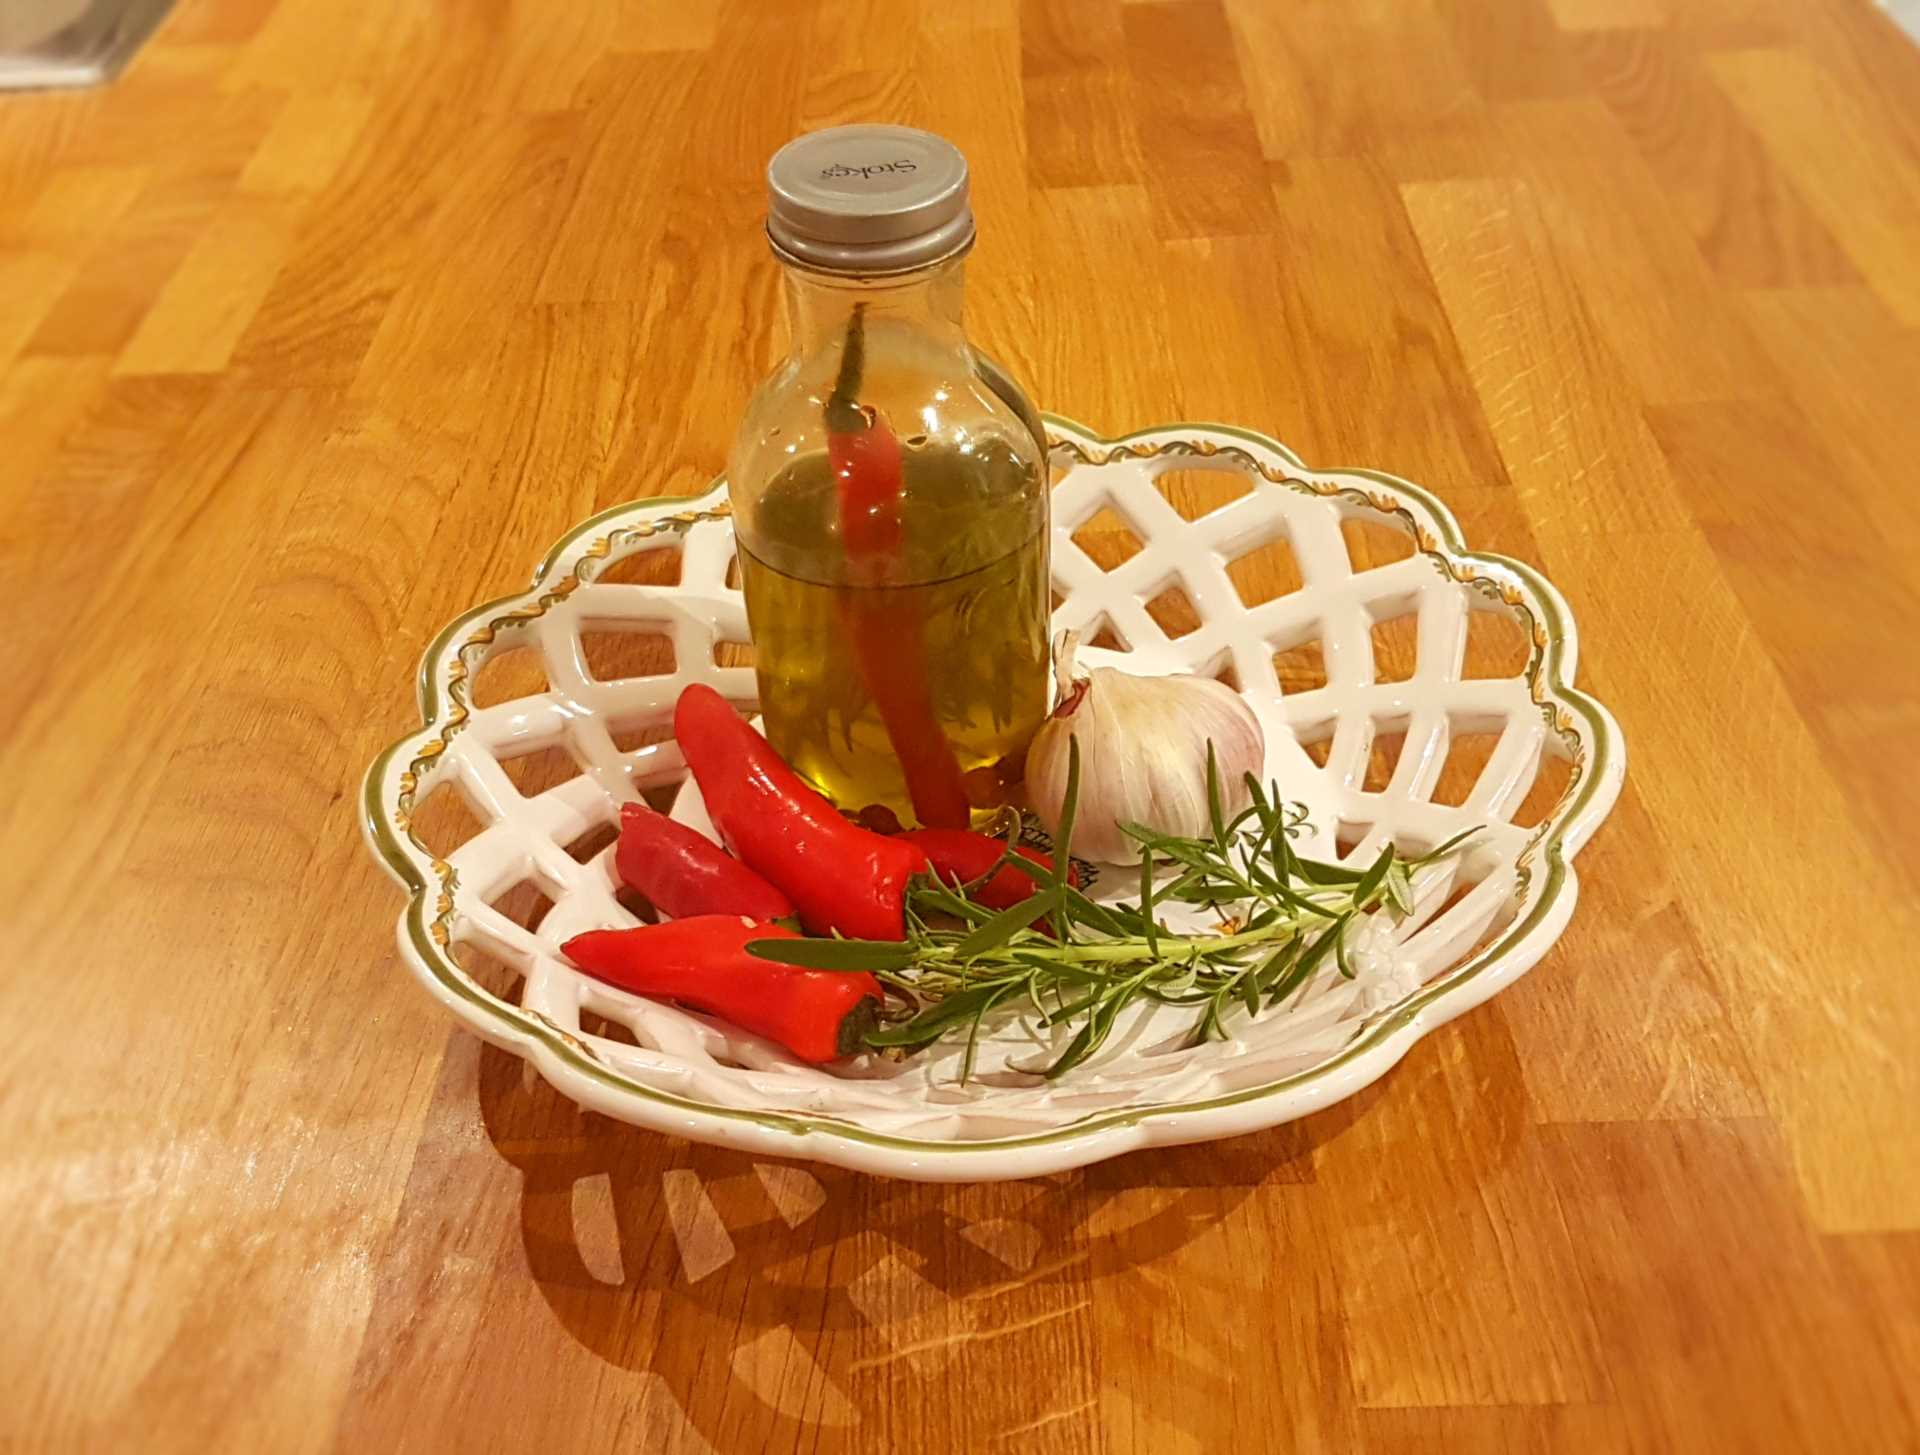 My homemade Chilli Oil recipe